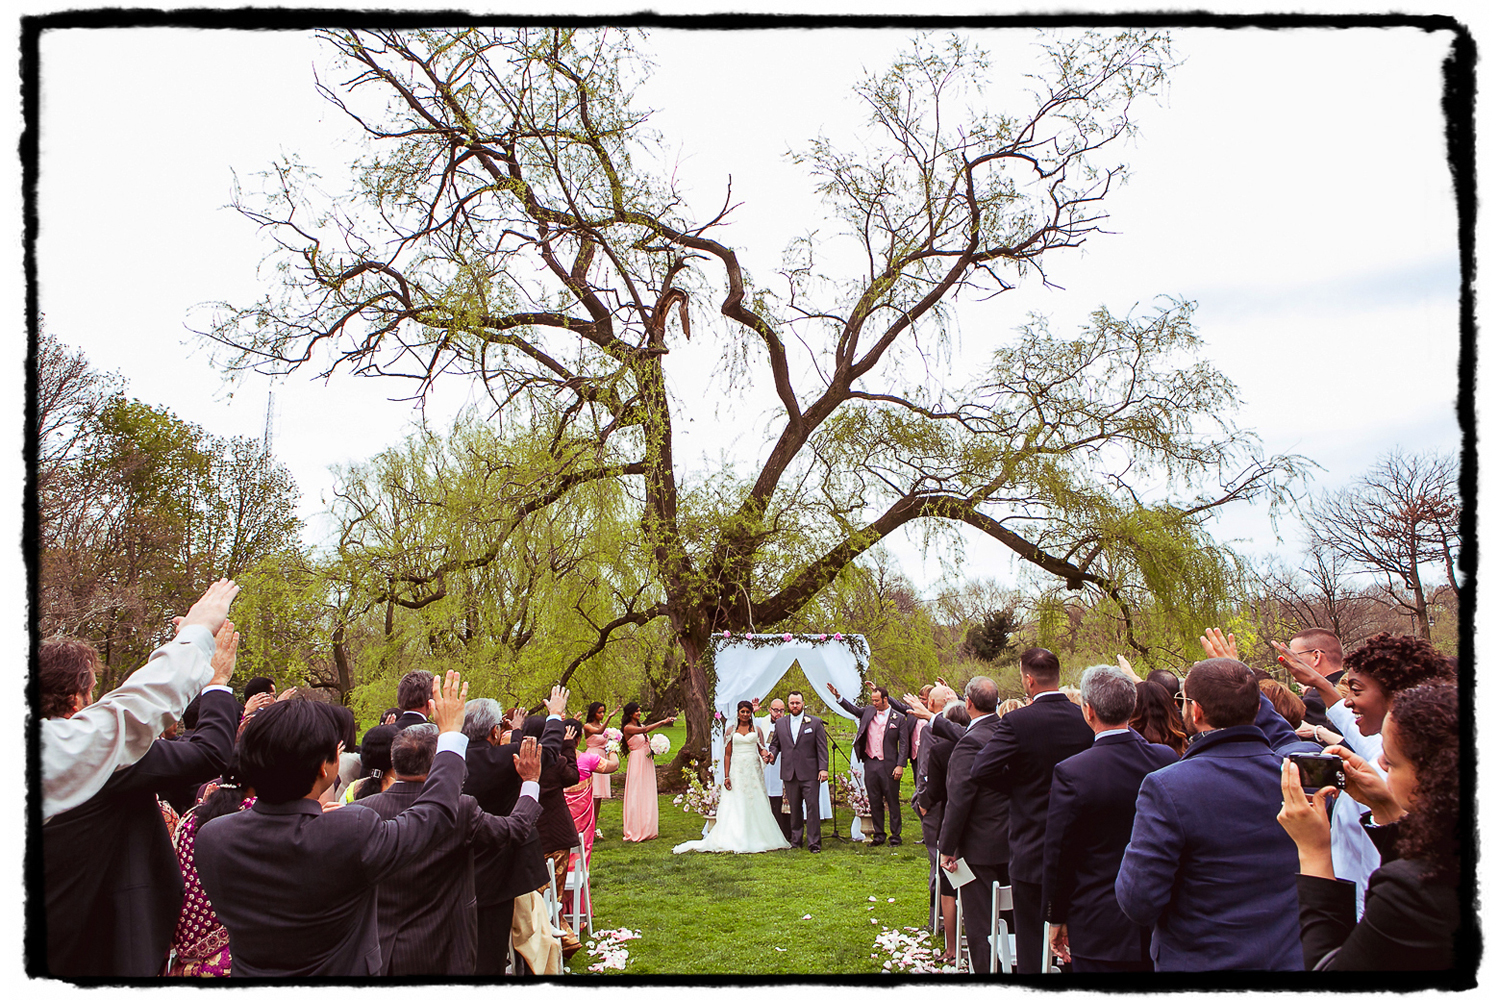 Guests raise their hands as they bless the new marriage under a large willow tree at this April wedding at the Palm House at Brooklyn Botanic Garden.